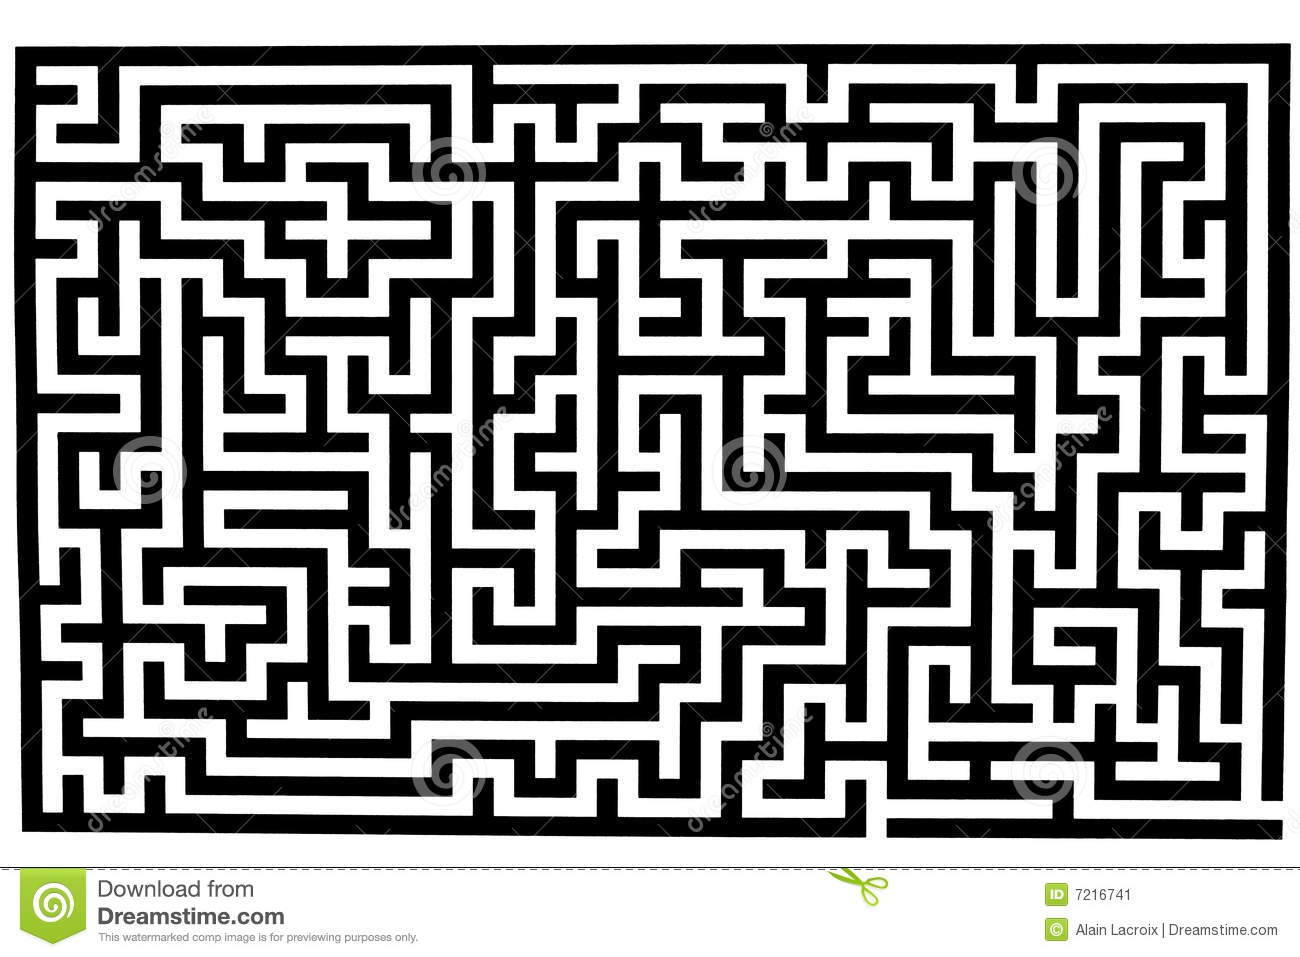 Labyrinthe compliqu illustration stock illustration du - Labyrinthe difficile ...